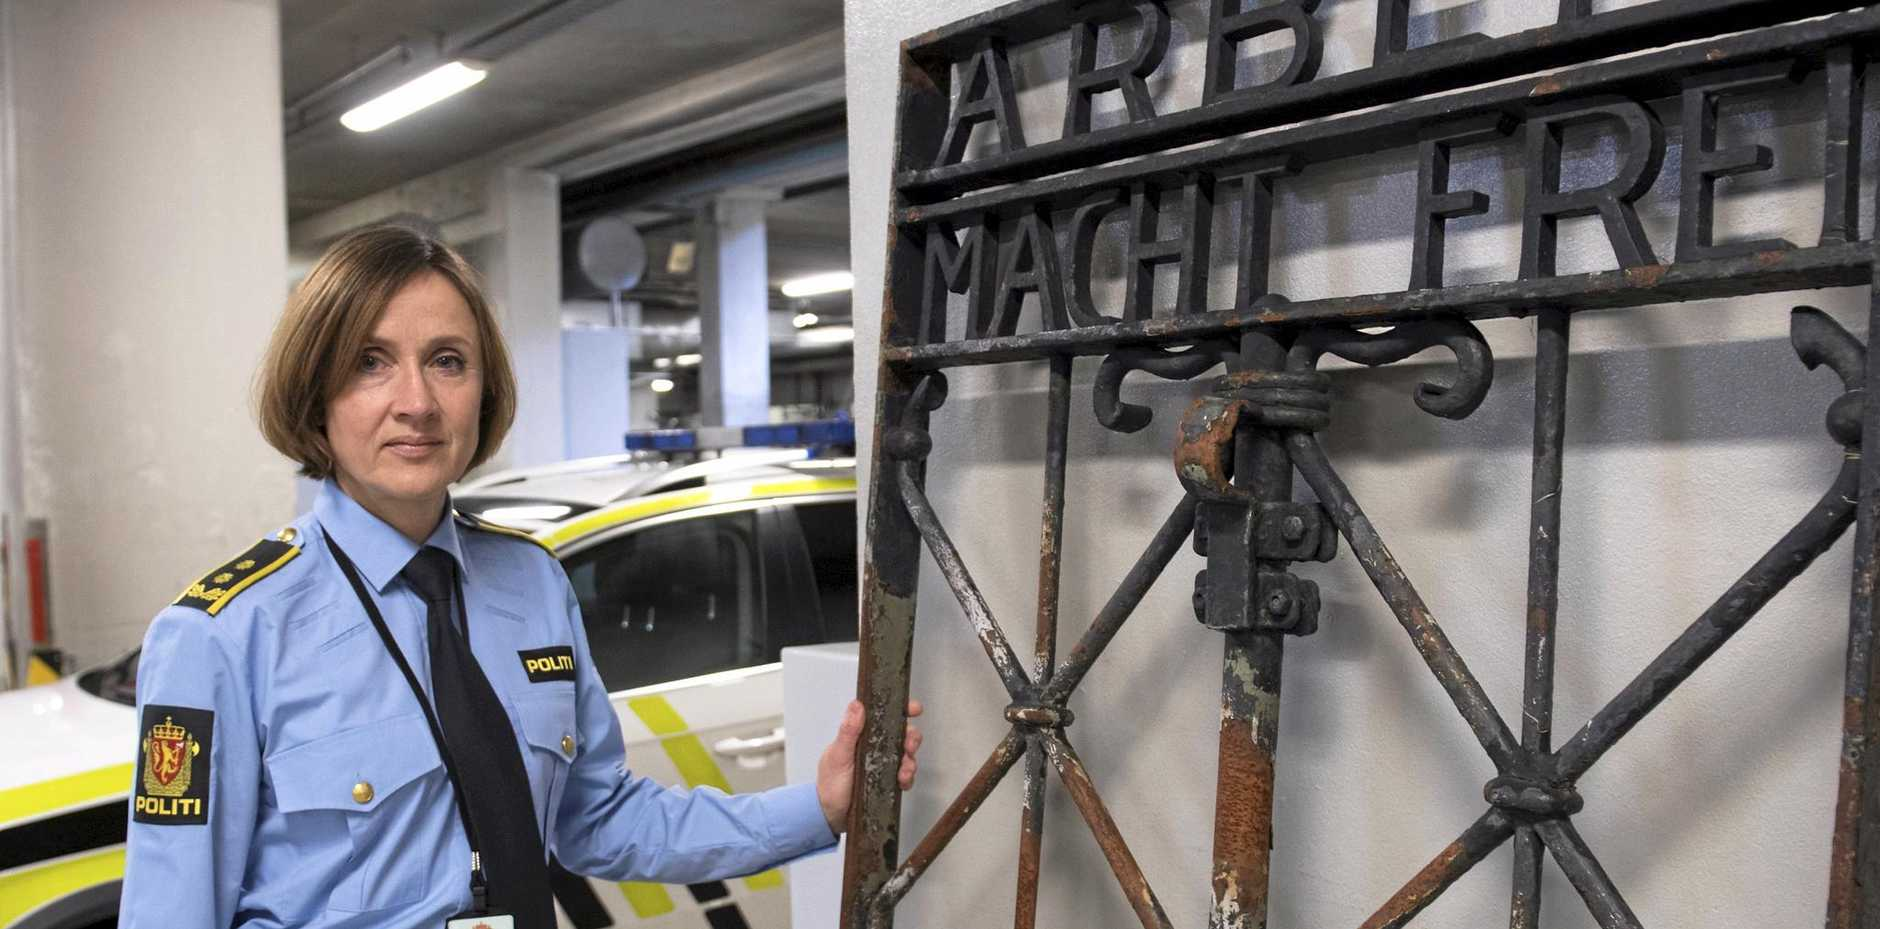 Kari Bjoerkhaug Trones stands next to the iron gate from the former Nazi concentration camp memorial site in Dachau.